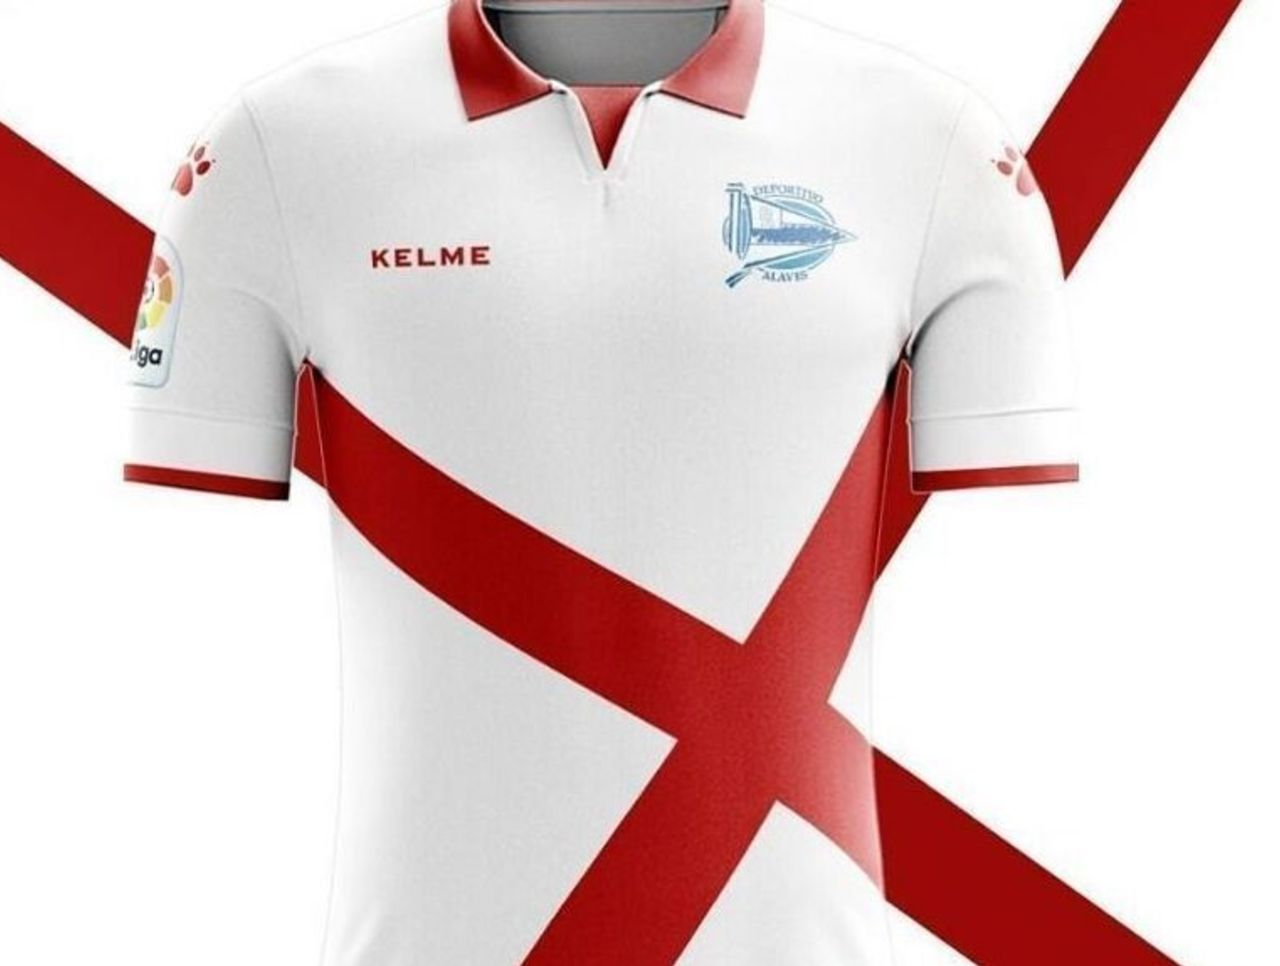 ... La Liga mid-table wonder Alaves has opted for this jazzy shirt  deserving of the club s best season in nearly 20 years and a maiden berth in  the Copa del ... 885e08fed